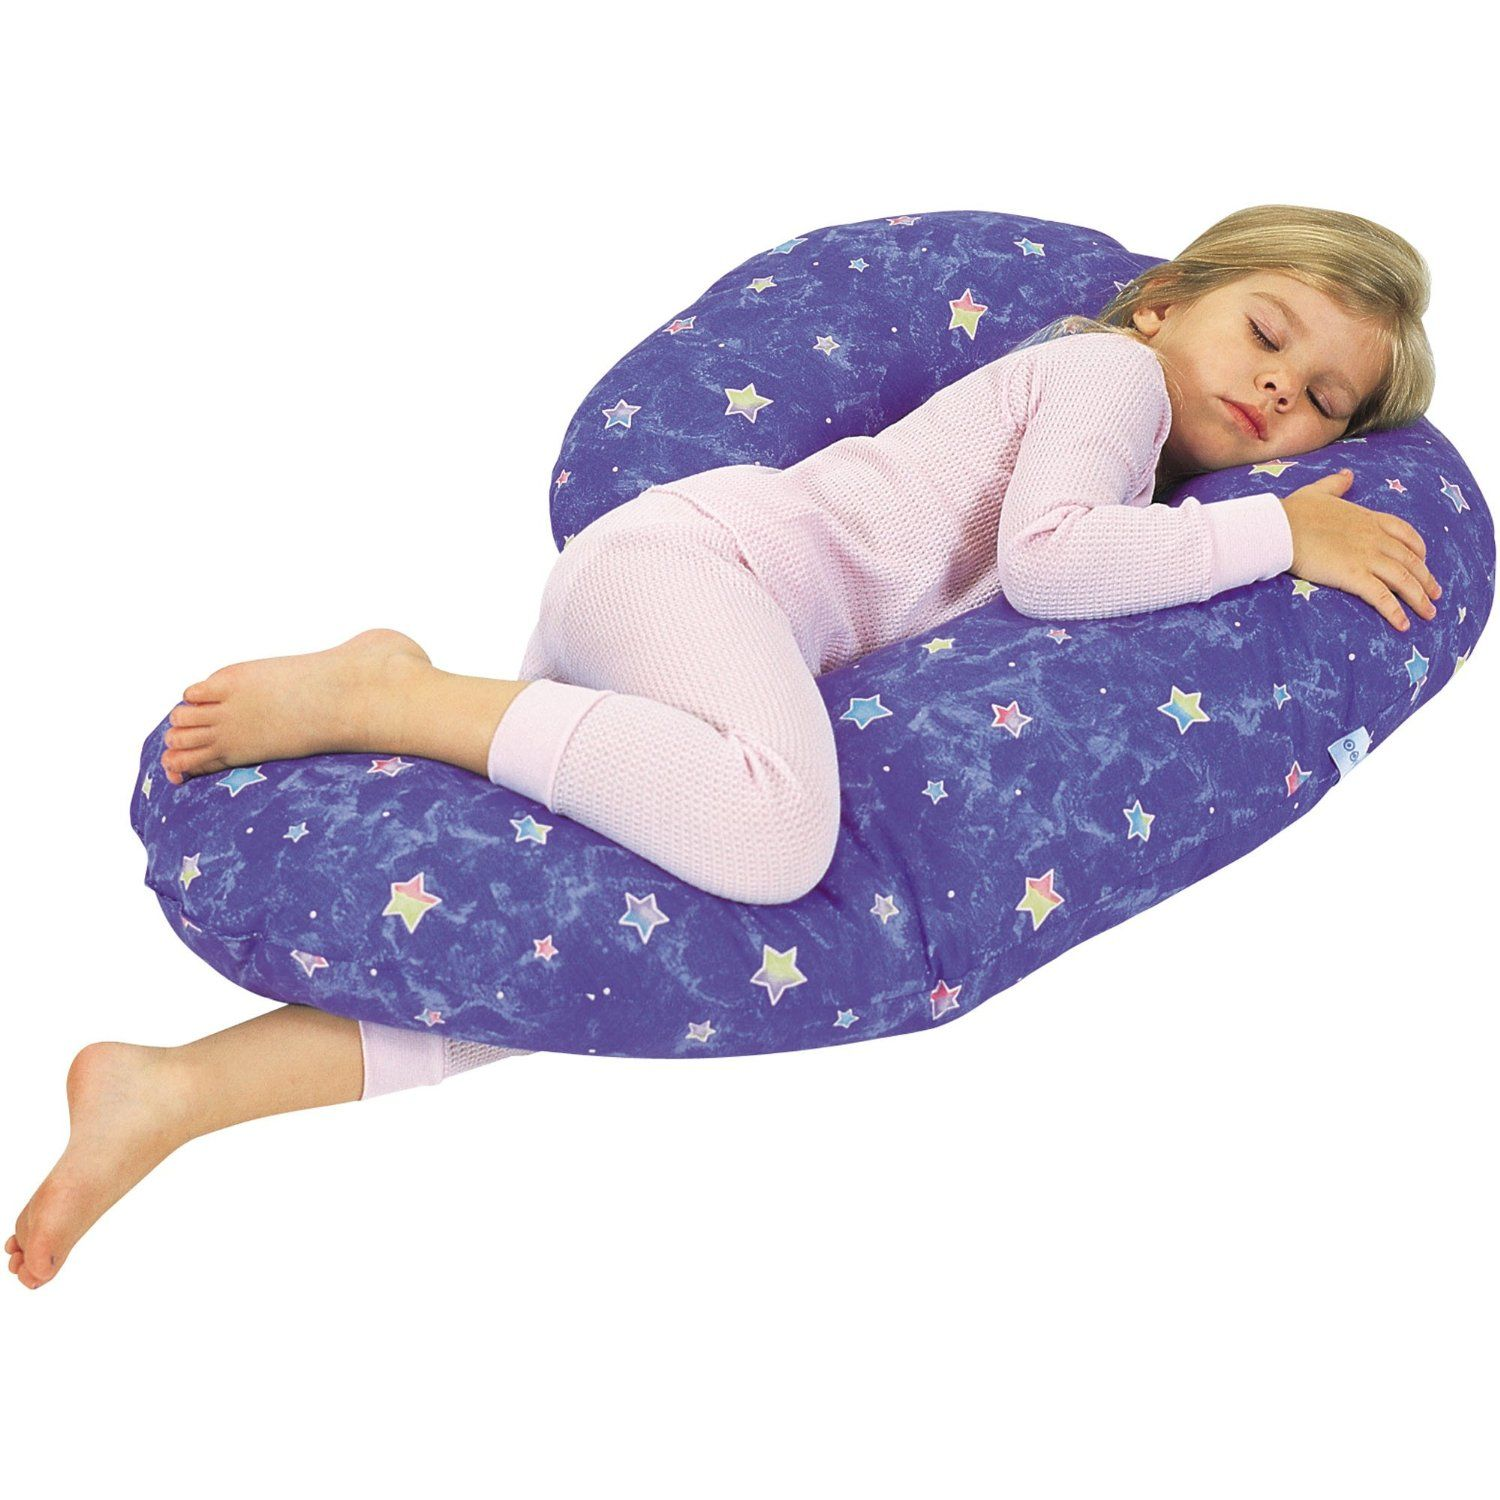 Lil Snoogle ChildSize Body Pillow by Leachco  BABiES